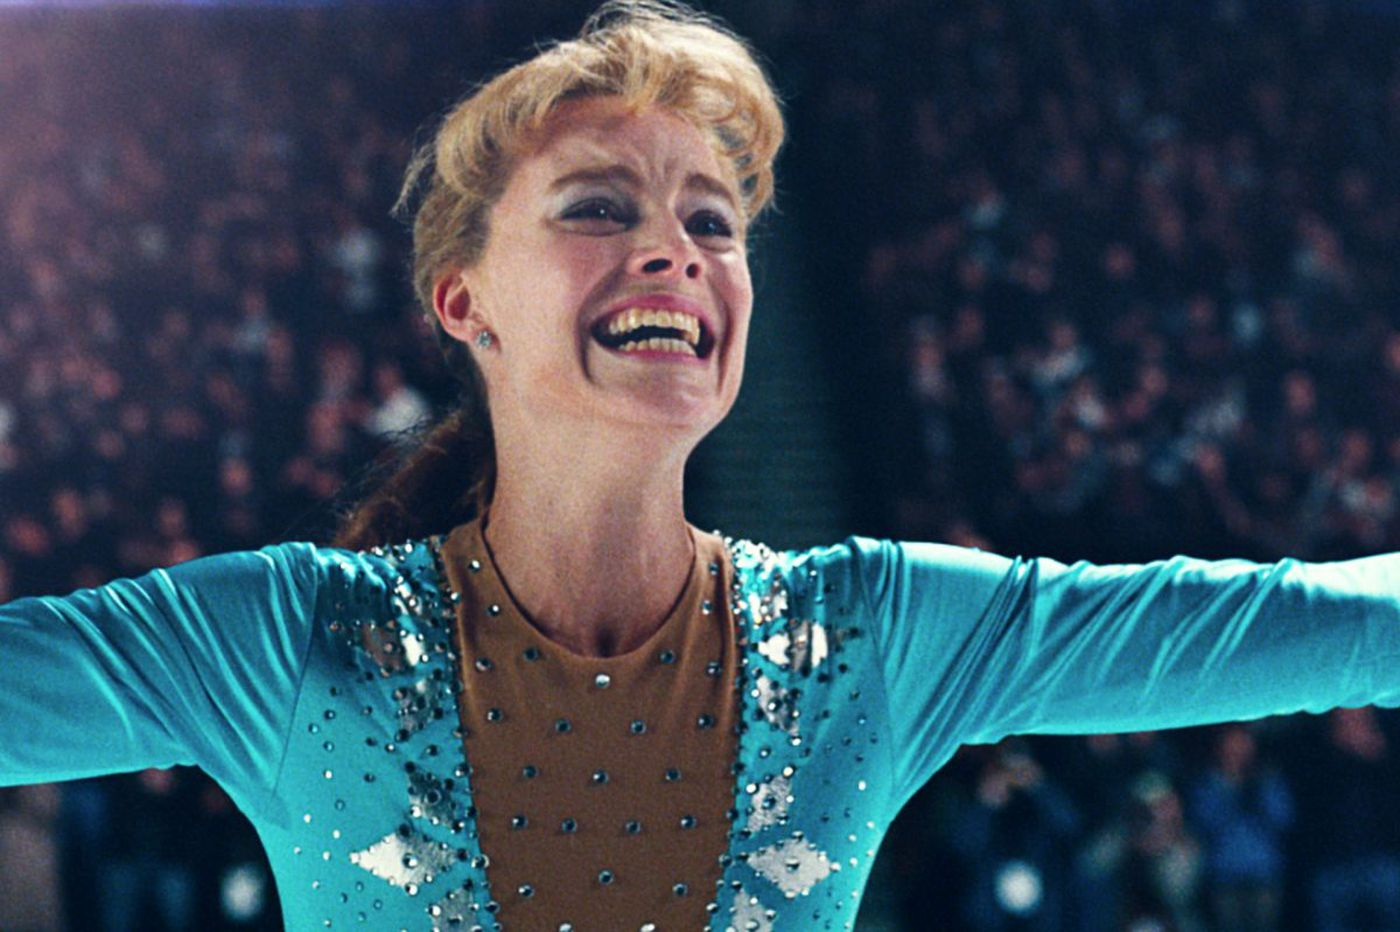 'I, Tonya': Tonya Harding biopic is black comedy, with a high degree of difficulty